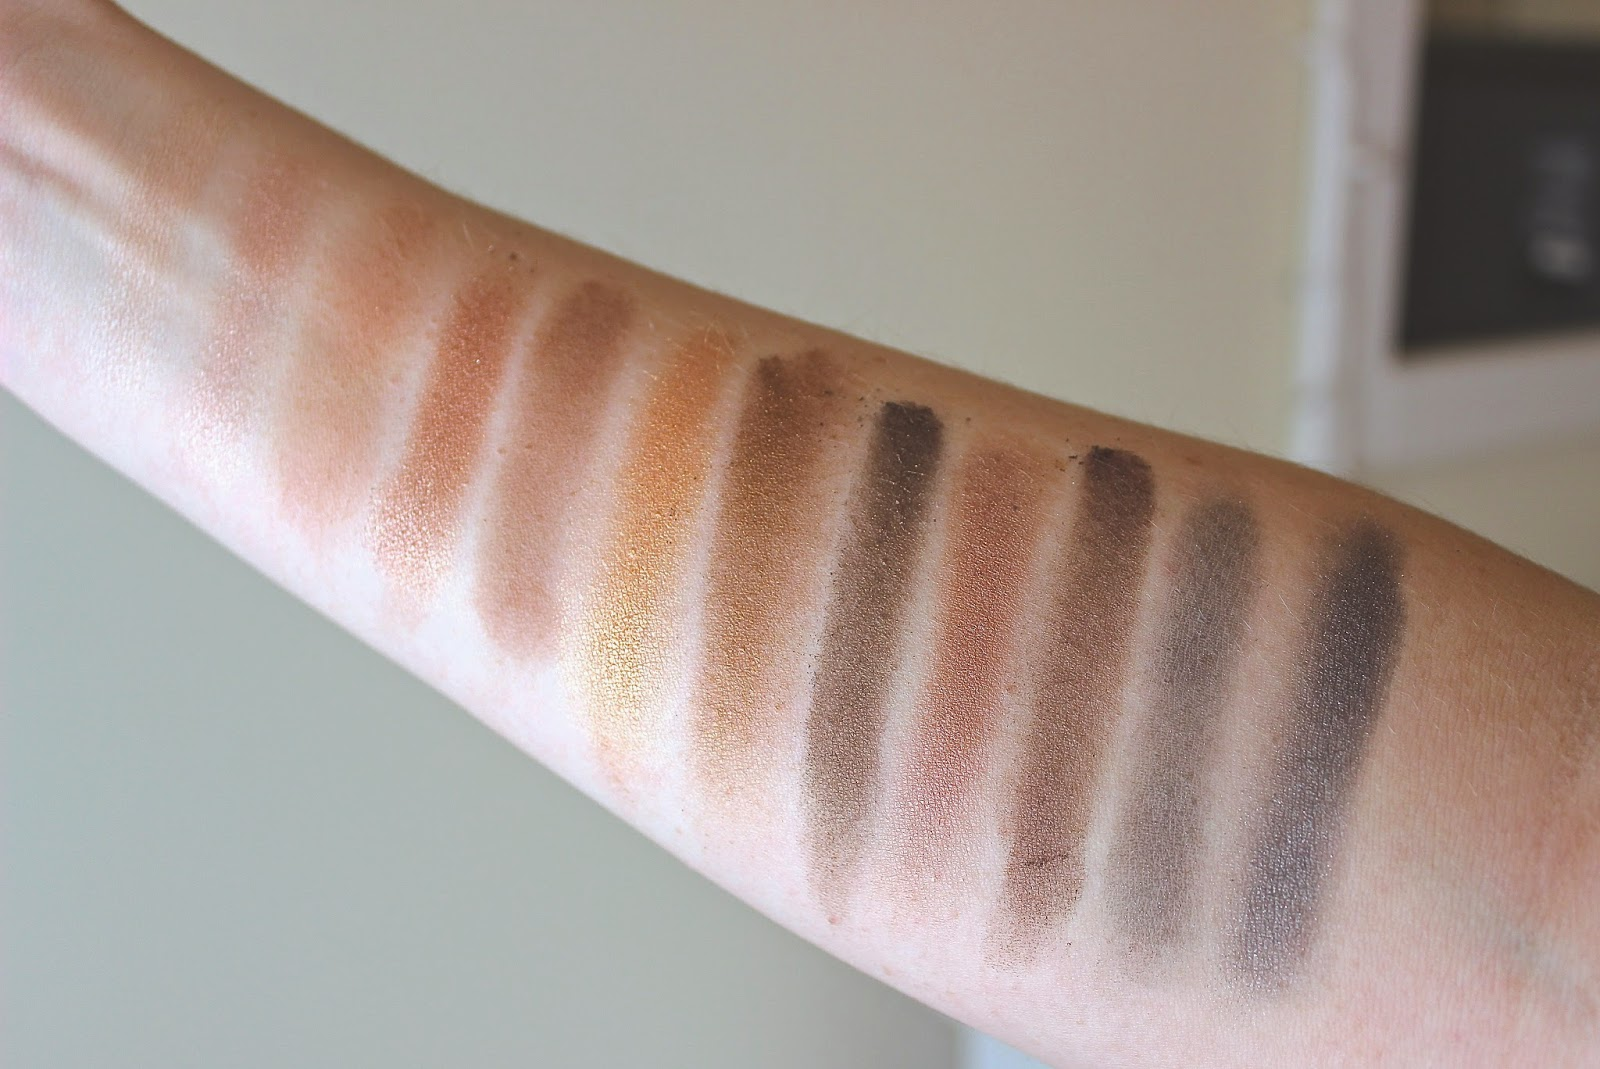 Urban Decay Naked Palette Swatches, Embur, Urban Decay, Beauty Blogger,